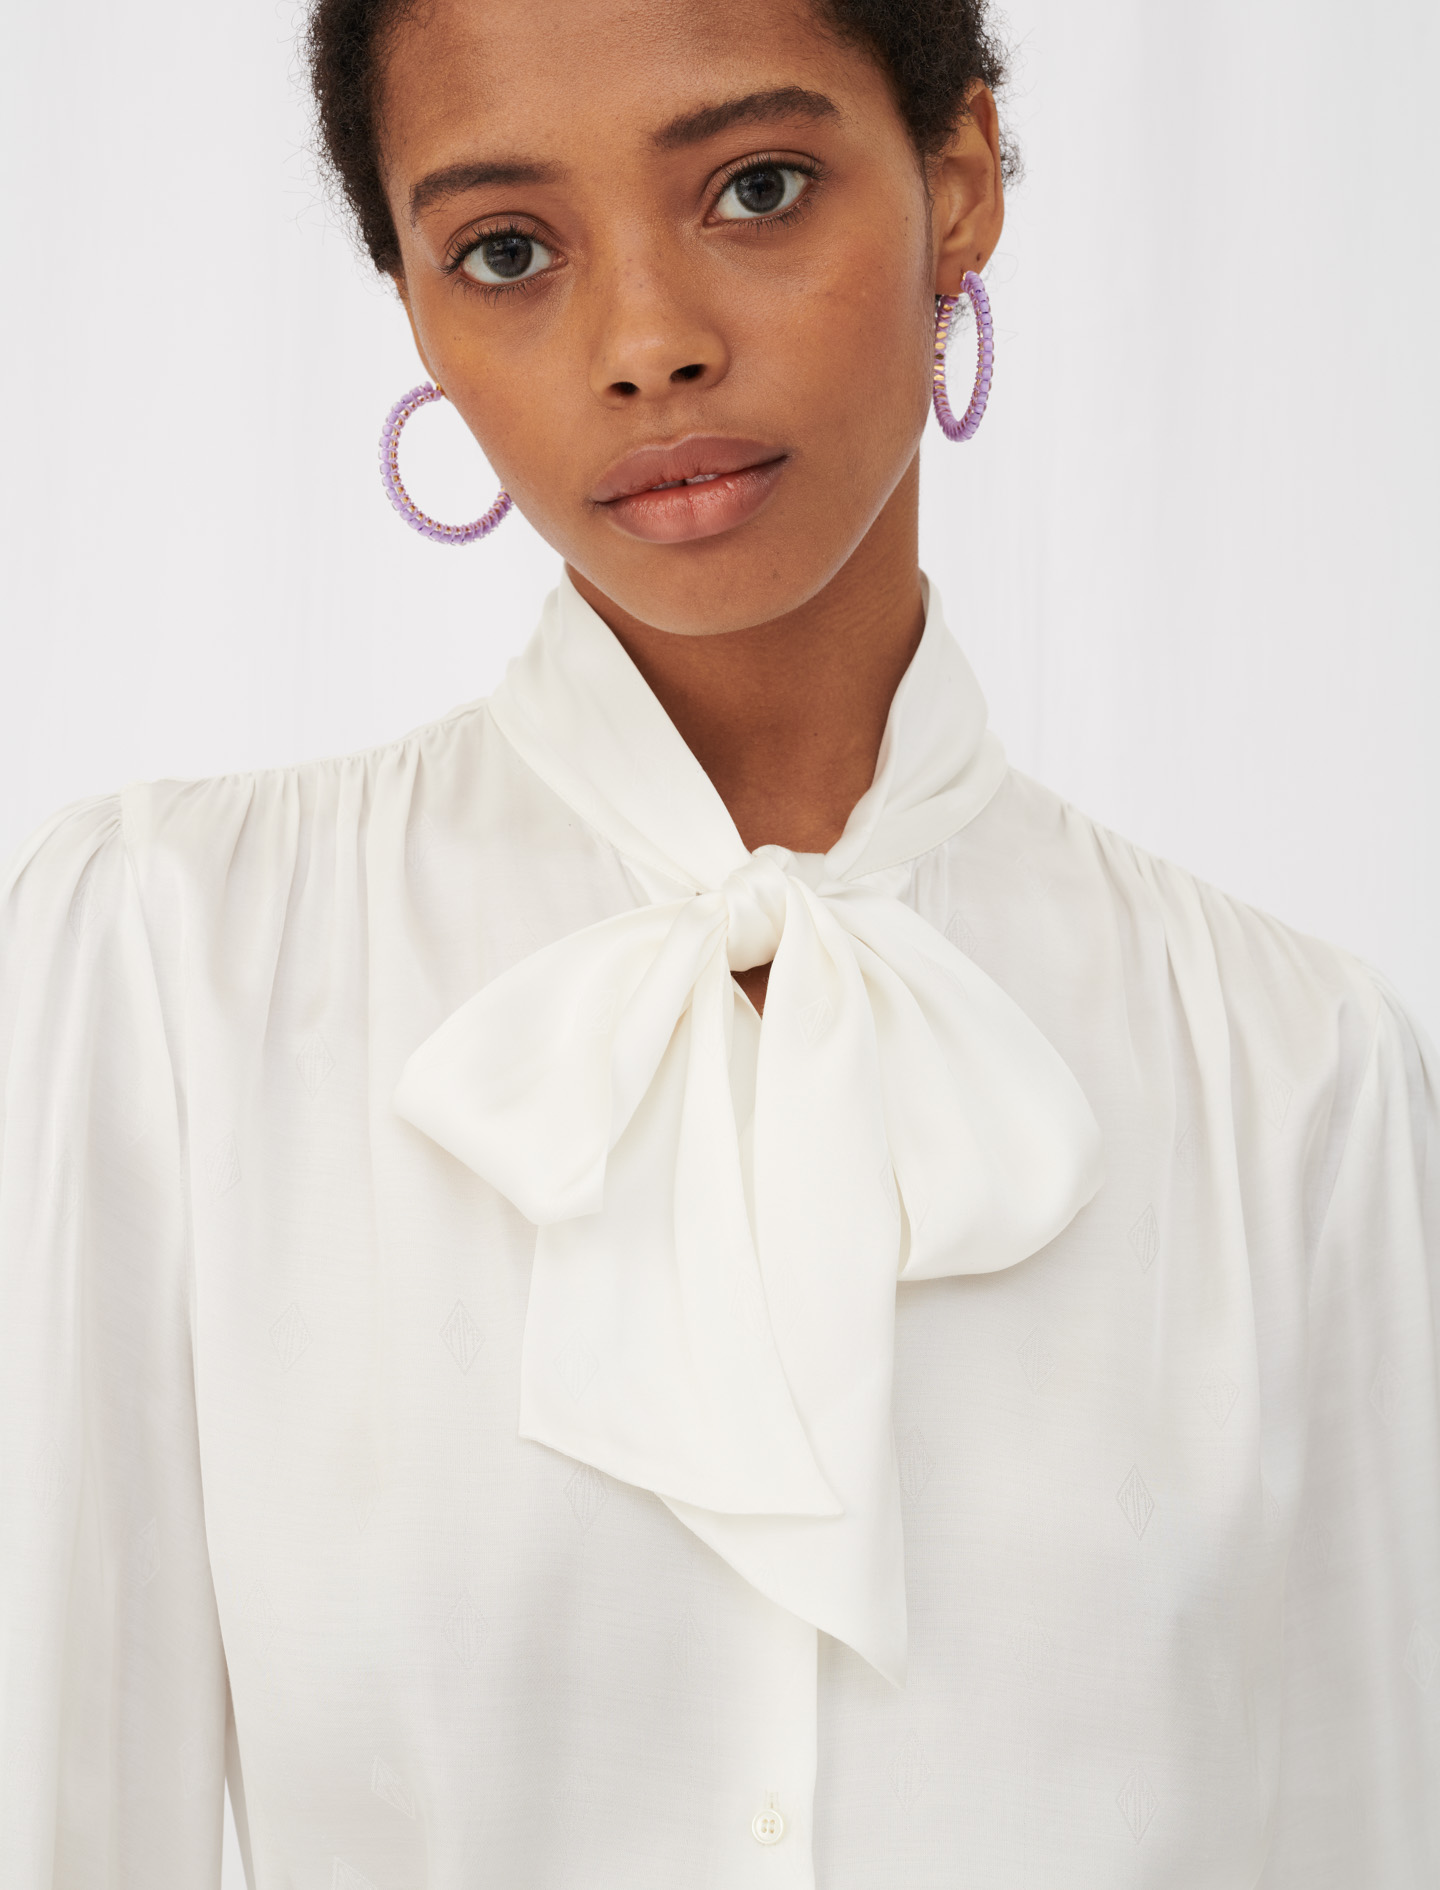 Women's white shirt with bow neckline and long sleeves by Maje Paris